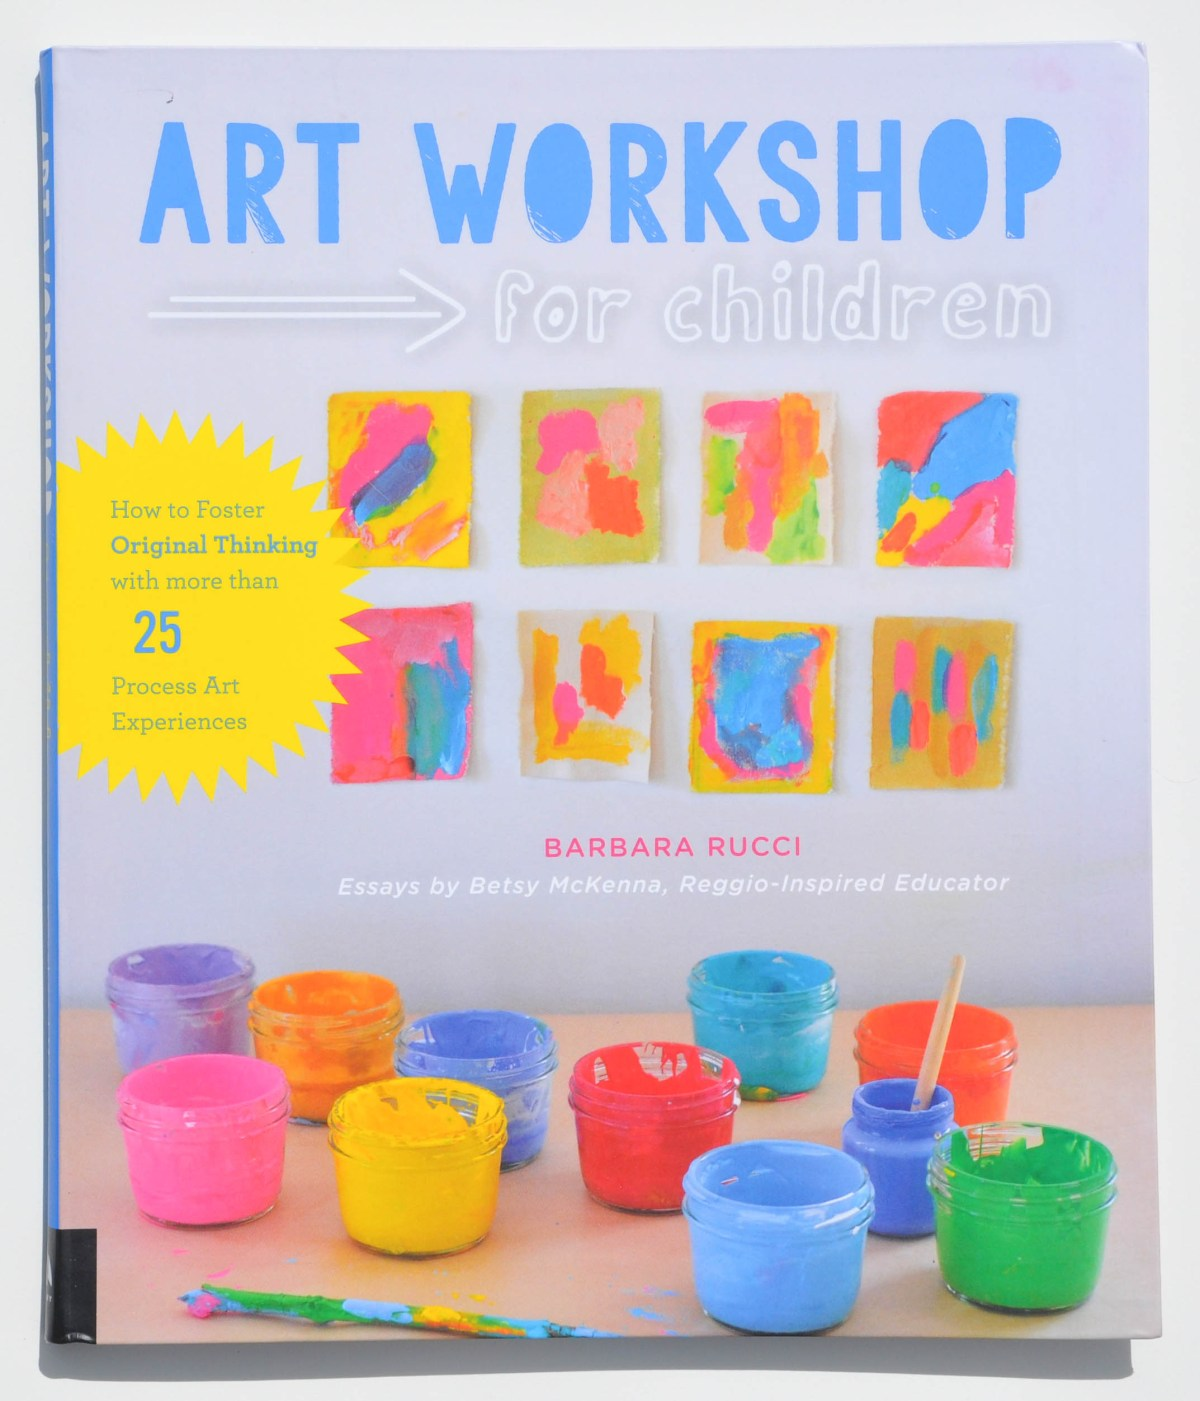 children's art book that describes fun art projects for young children